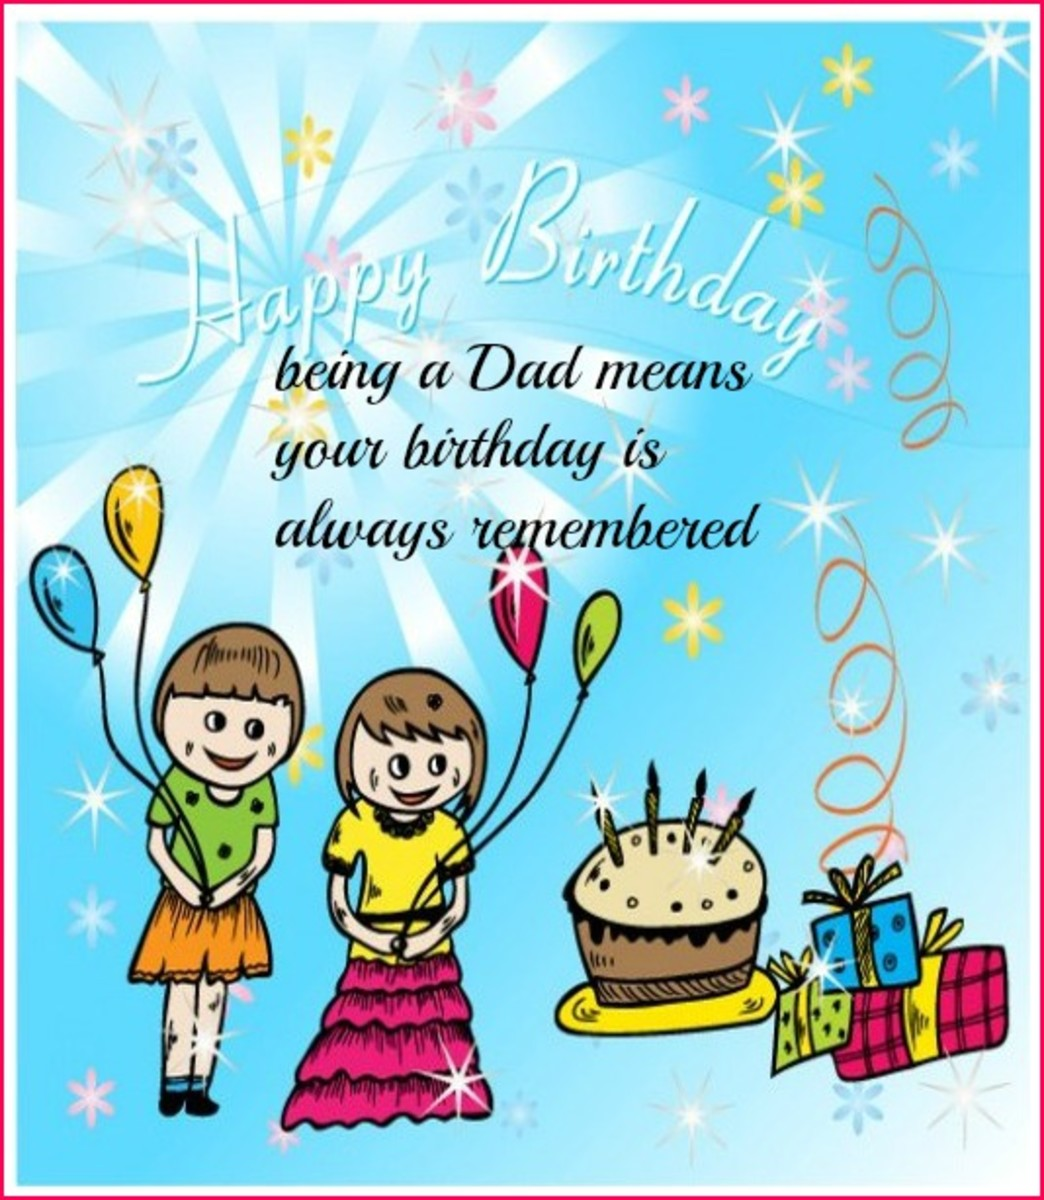 Email Birthday Card for Dad